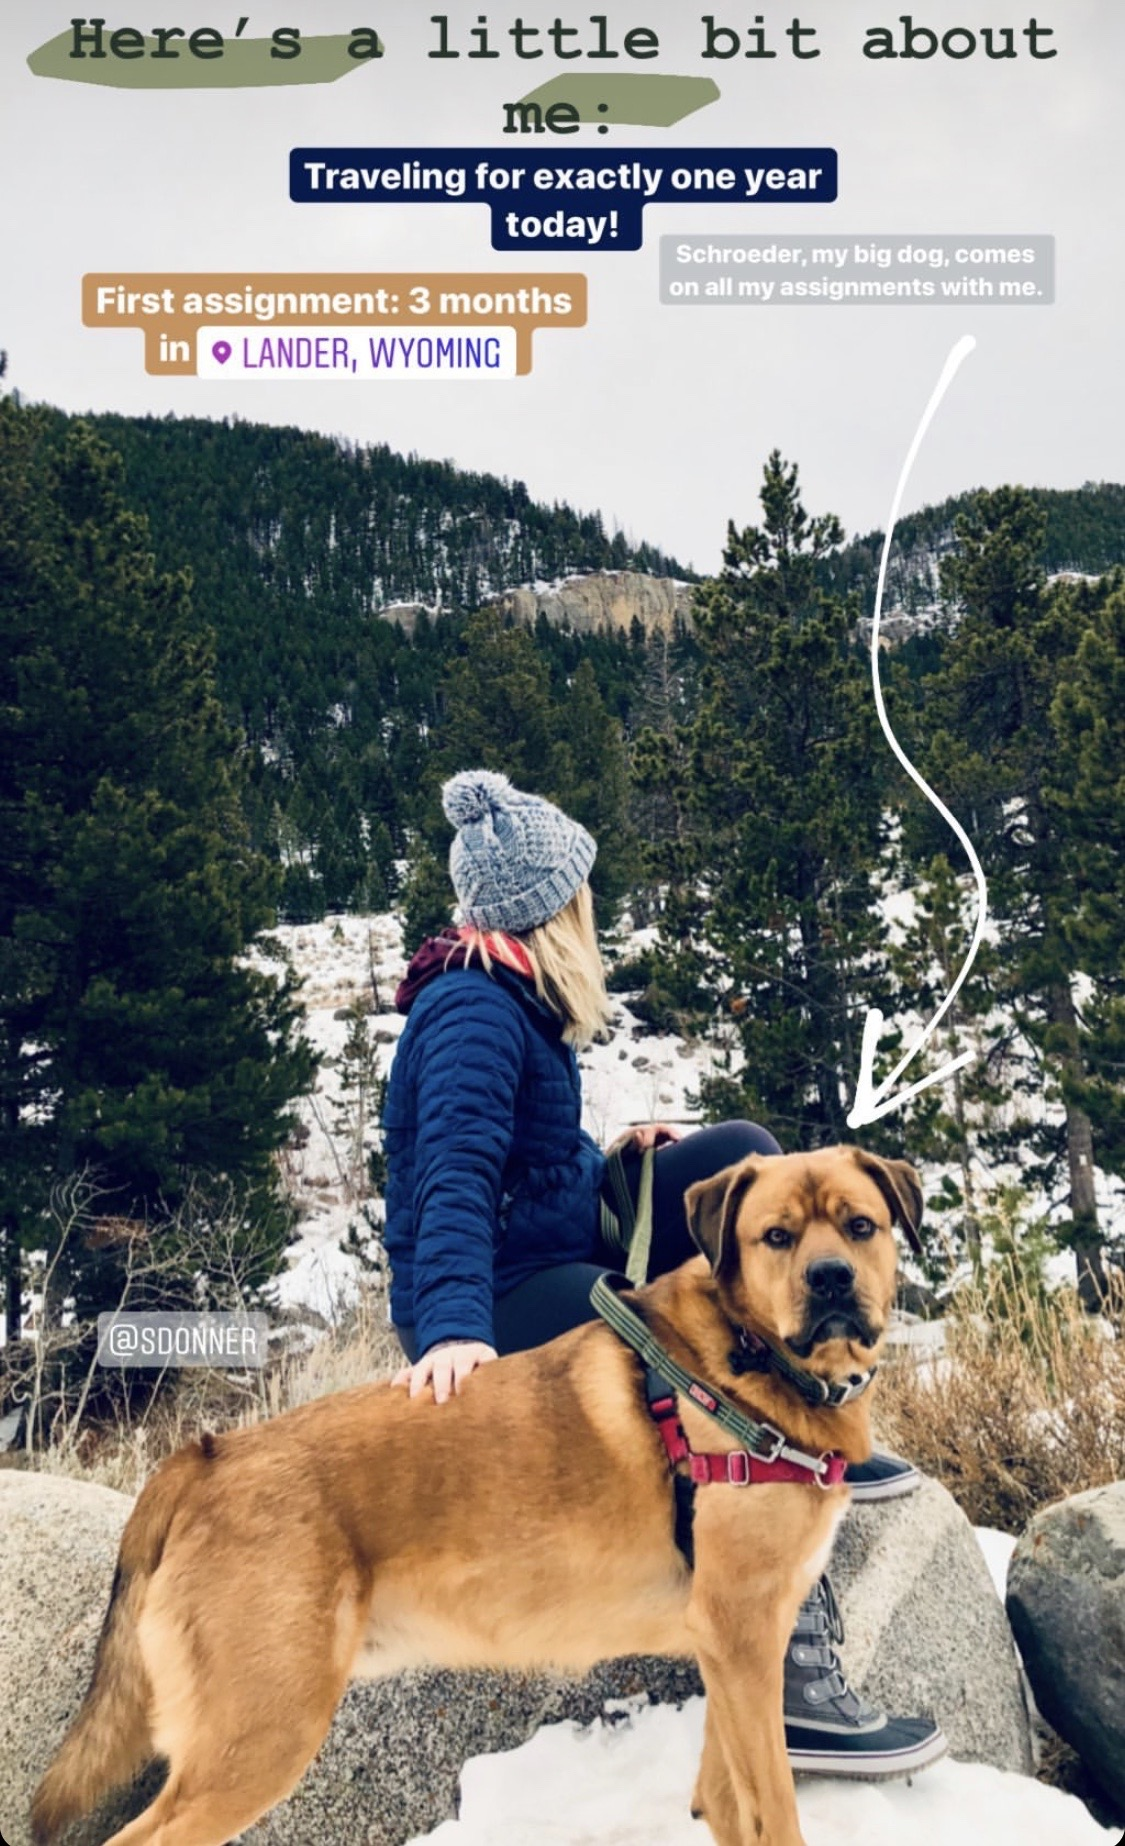 Travel Nurse Shelby Donner and her dog on a snowy mountain top